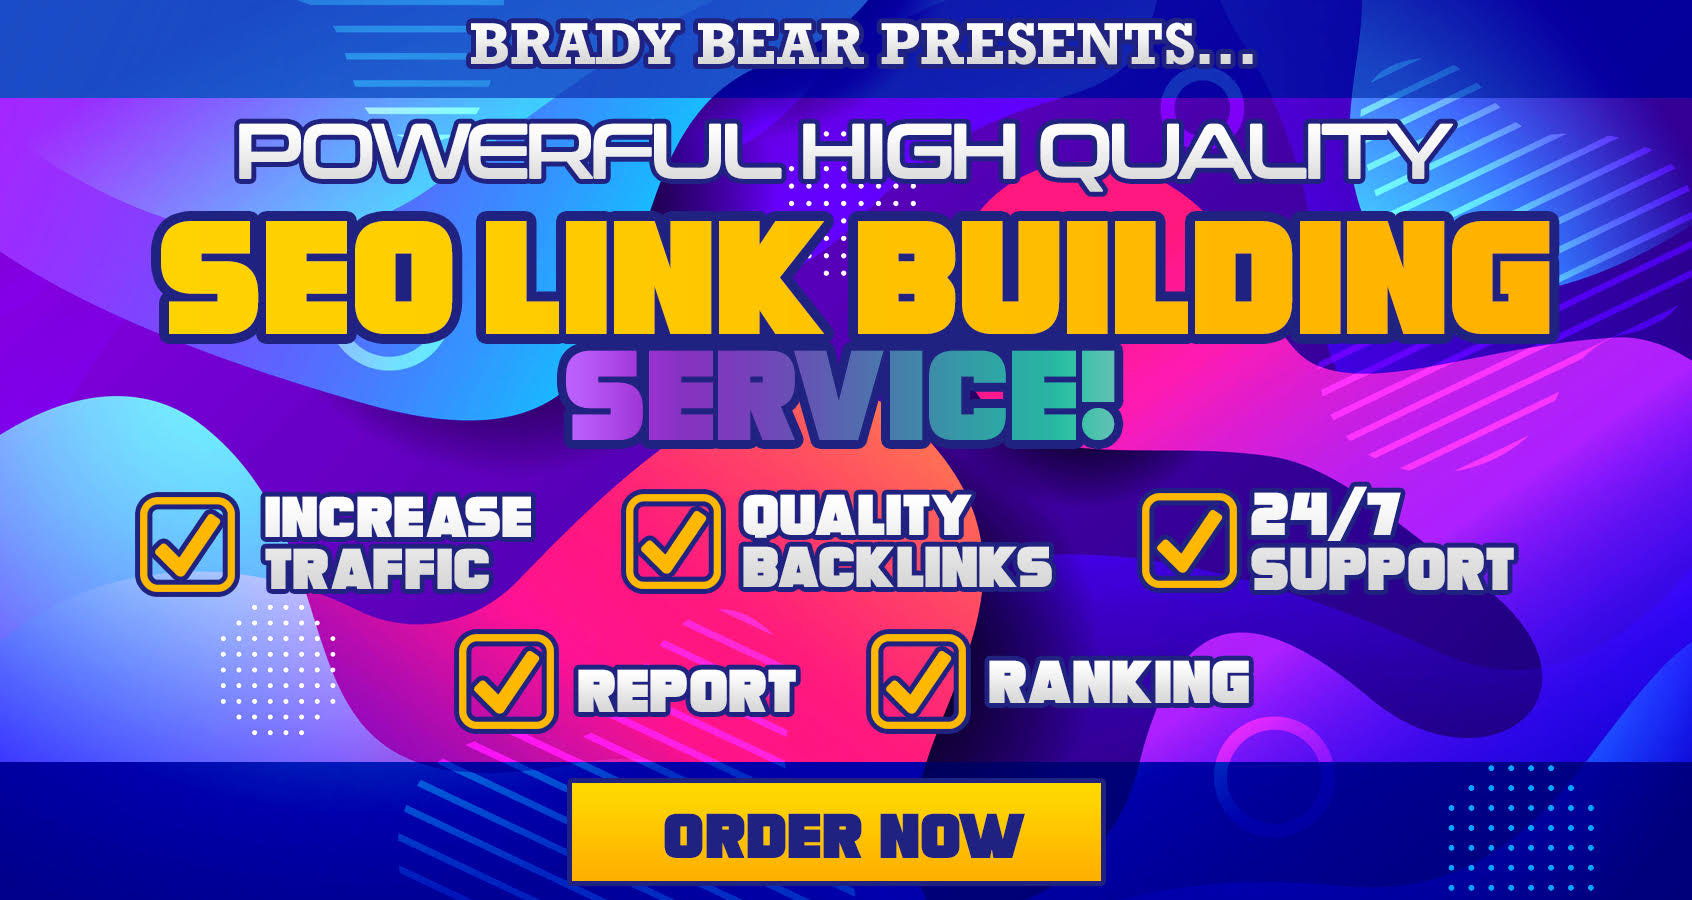 Powerful Quality SEO Link Building Service for Top Ranking